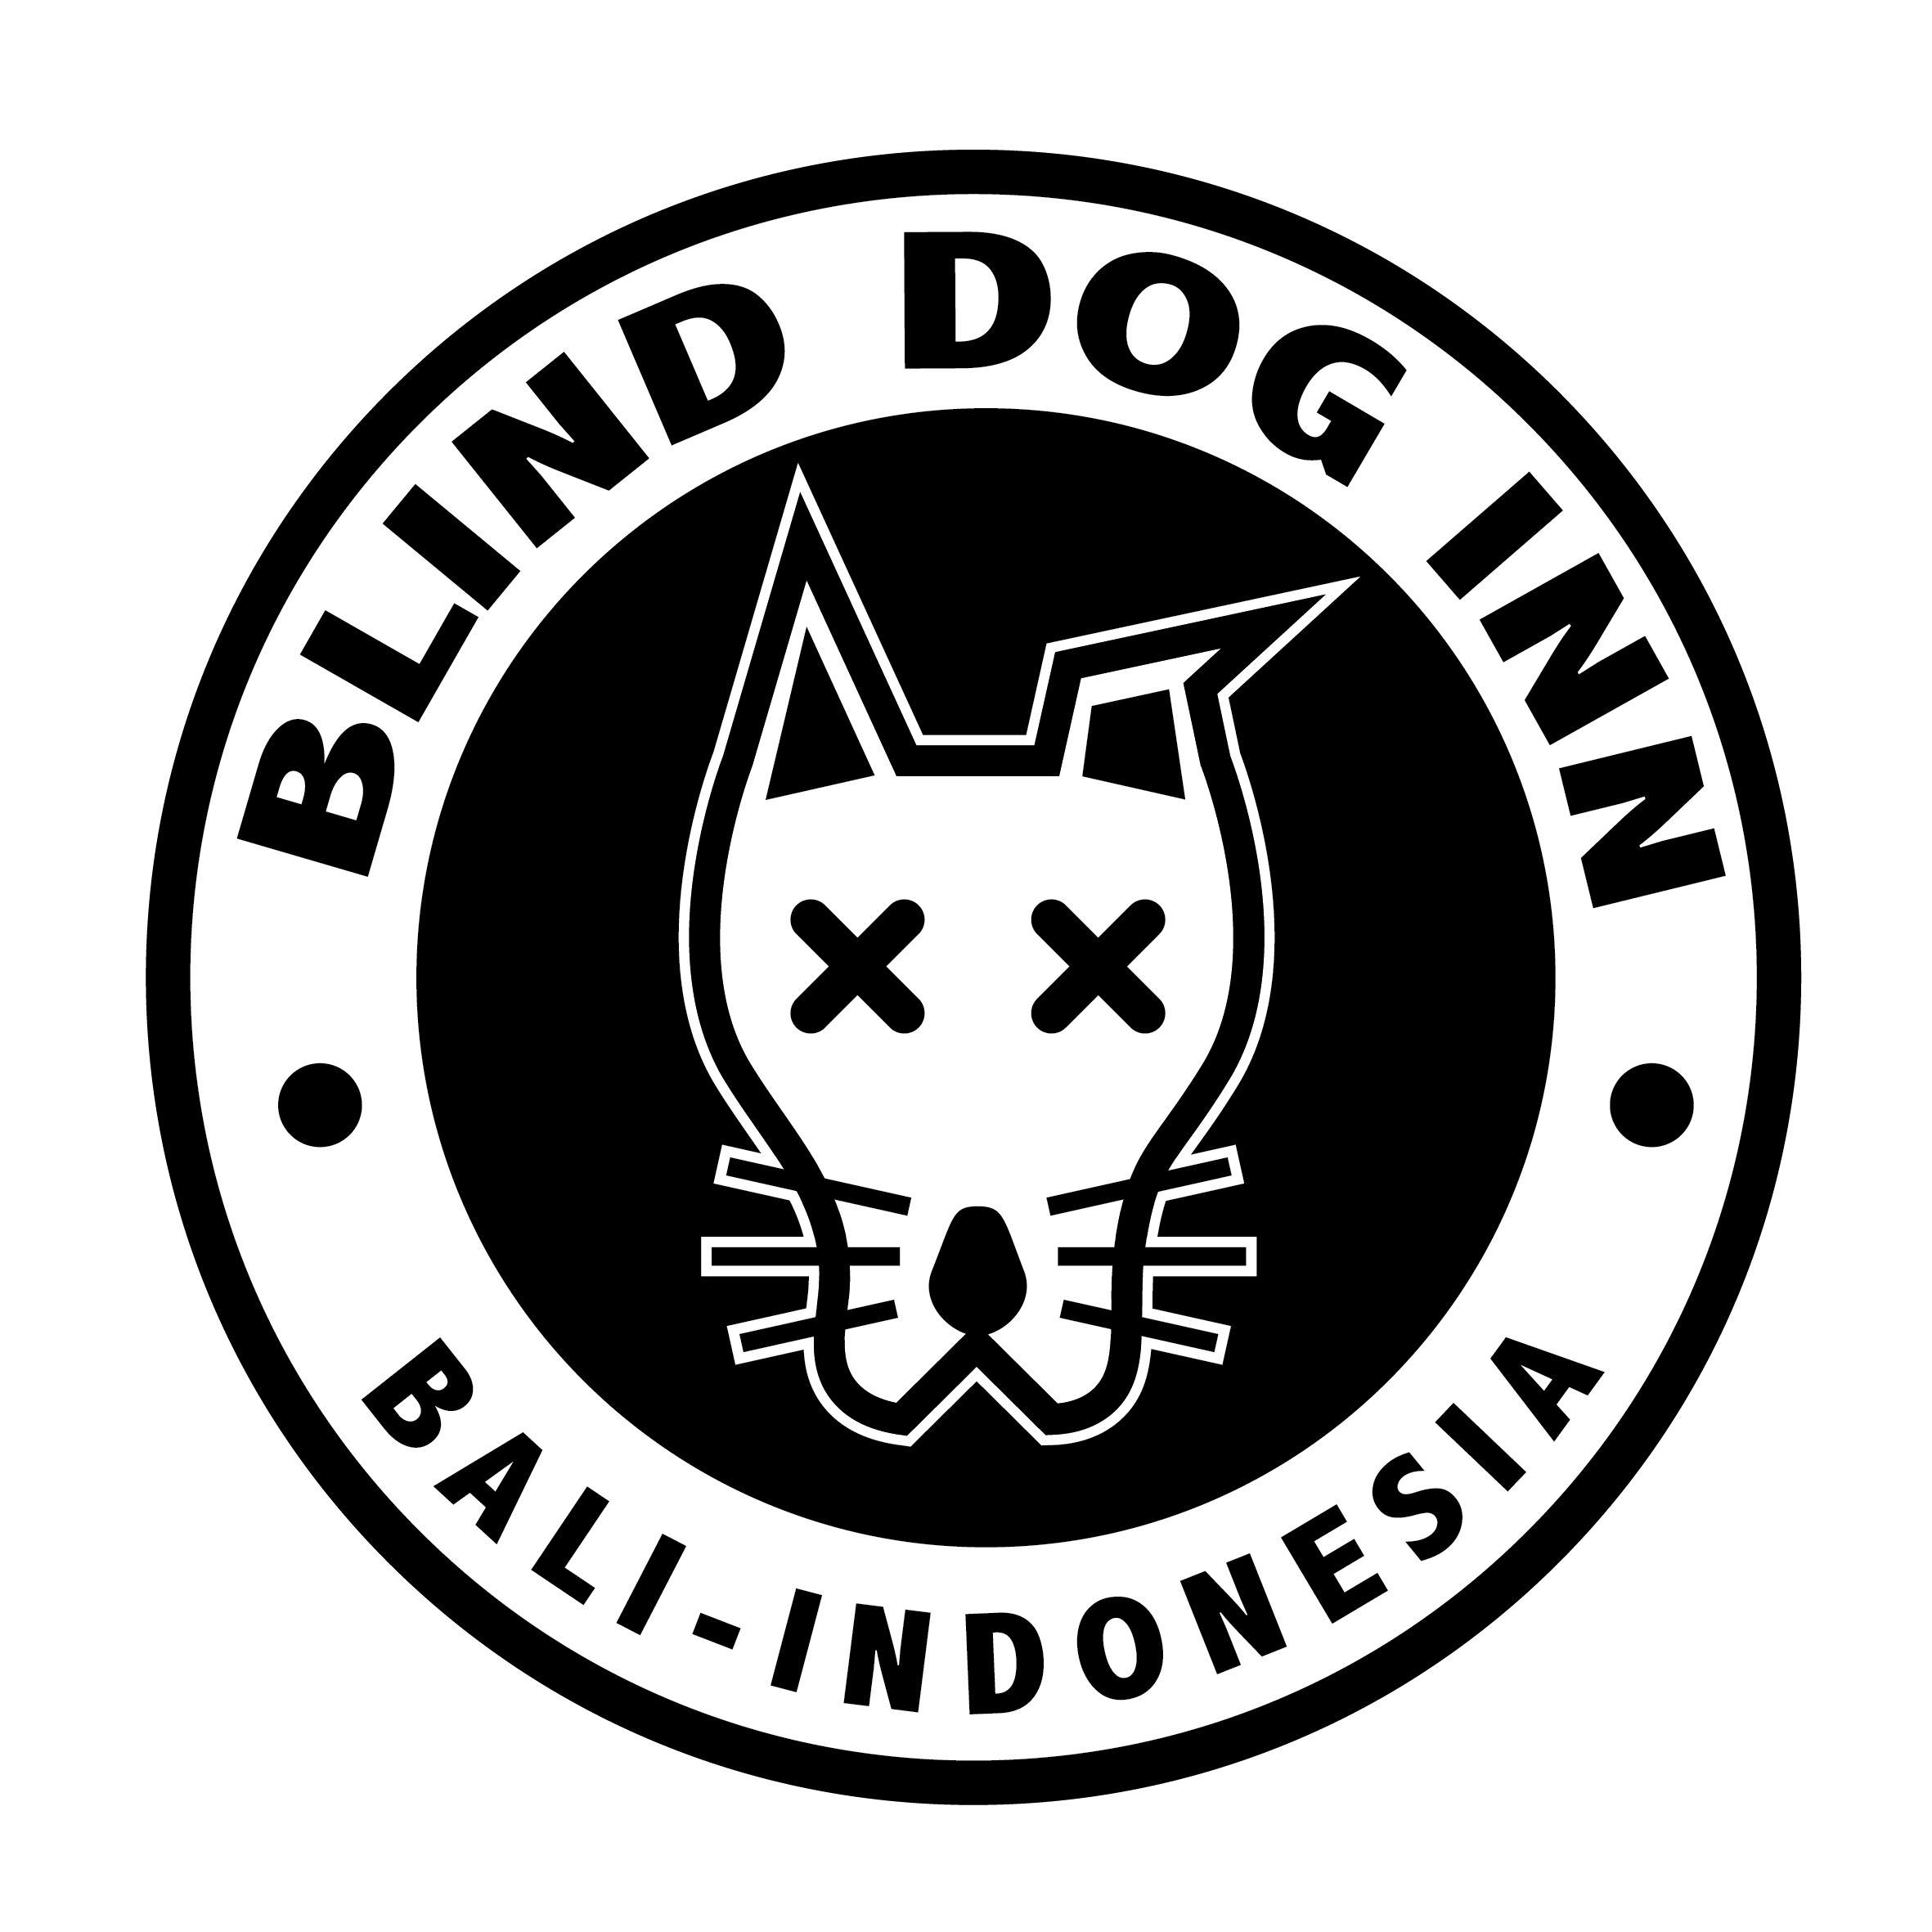 Blind Dog Inn - Surf Camp for All Levels!